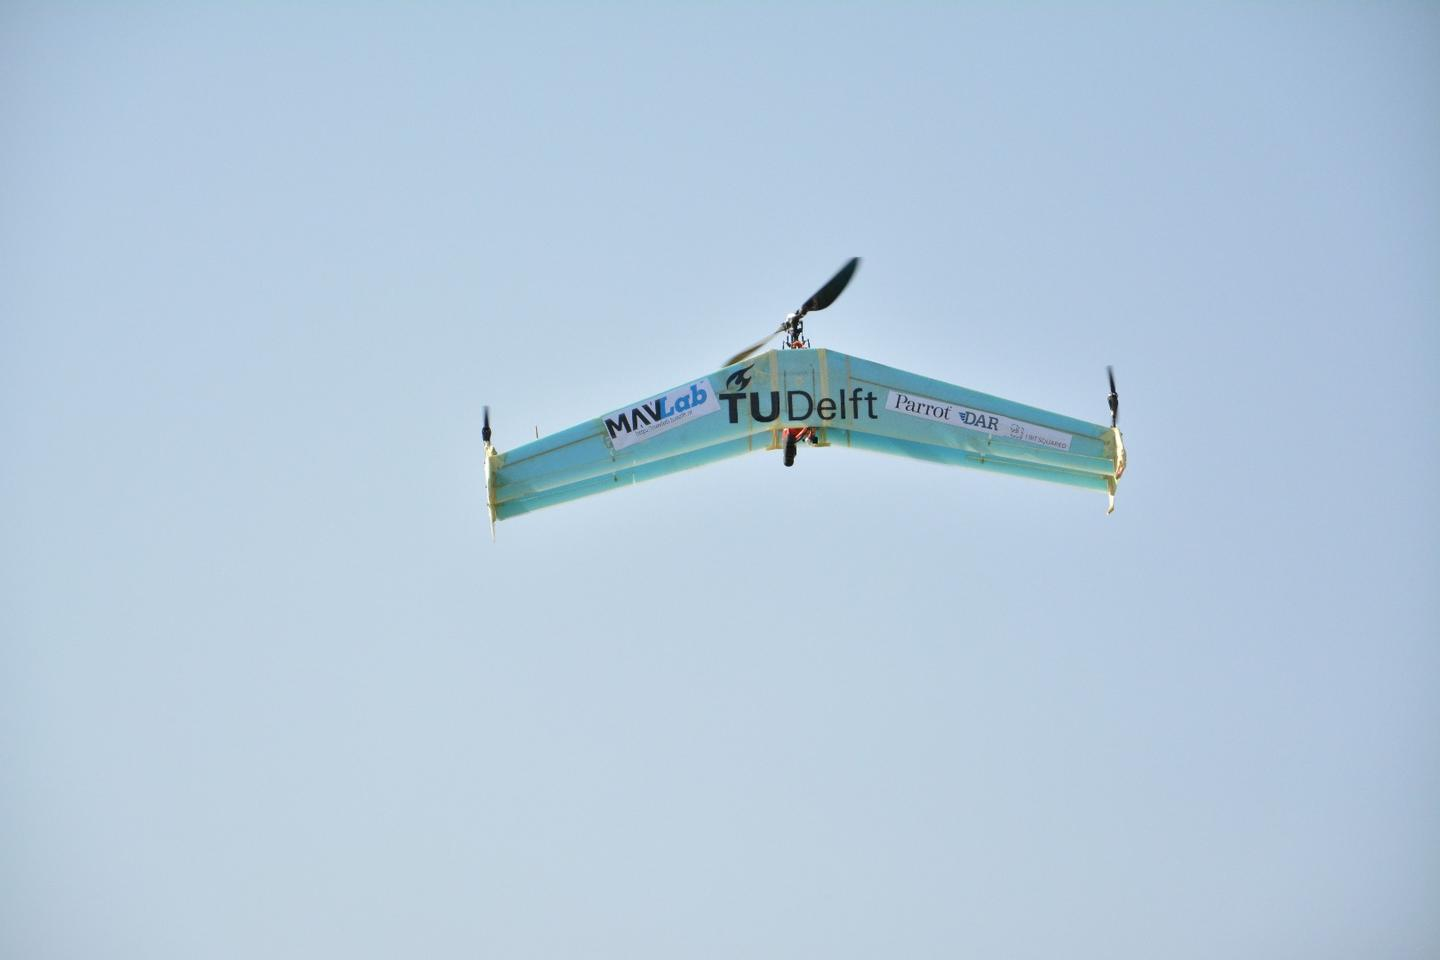 The delftAcopter is capable of entirely autonomous flight, including takeoff, forward flight transition and landing